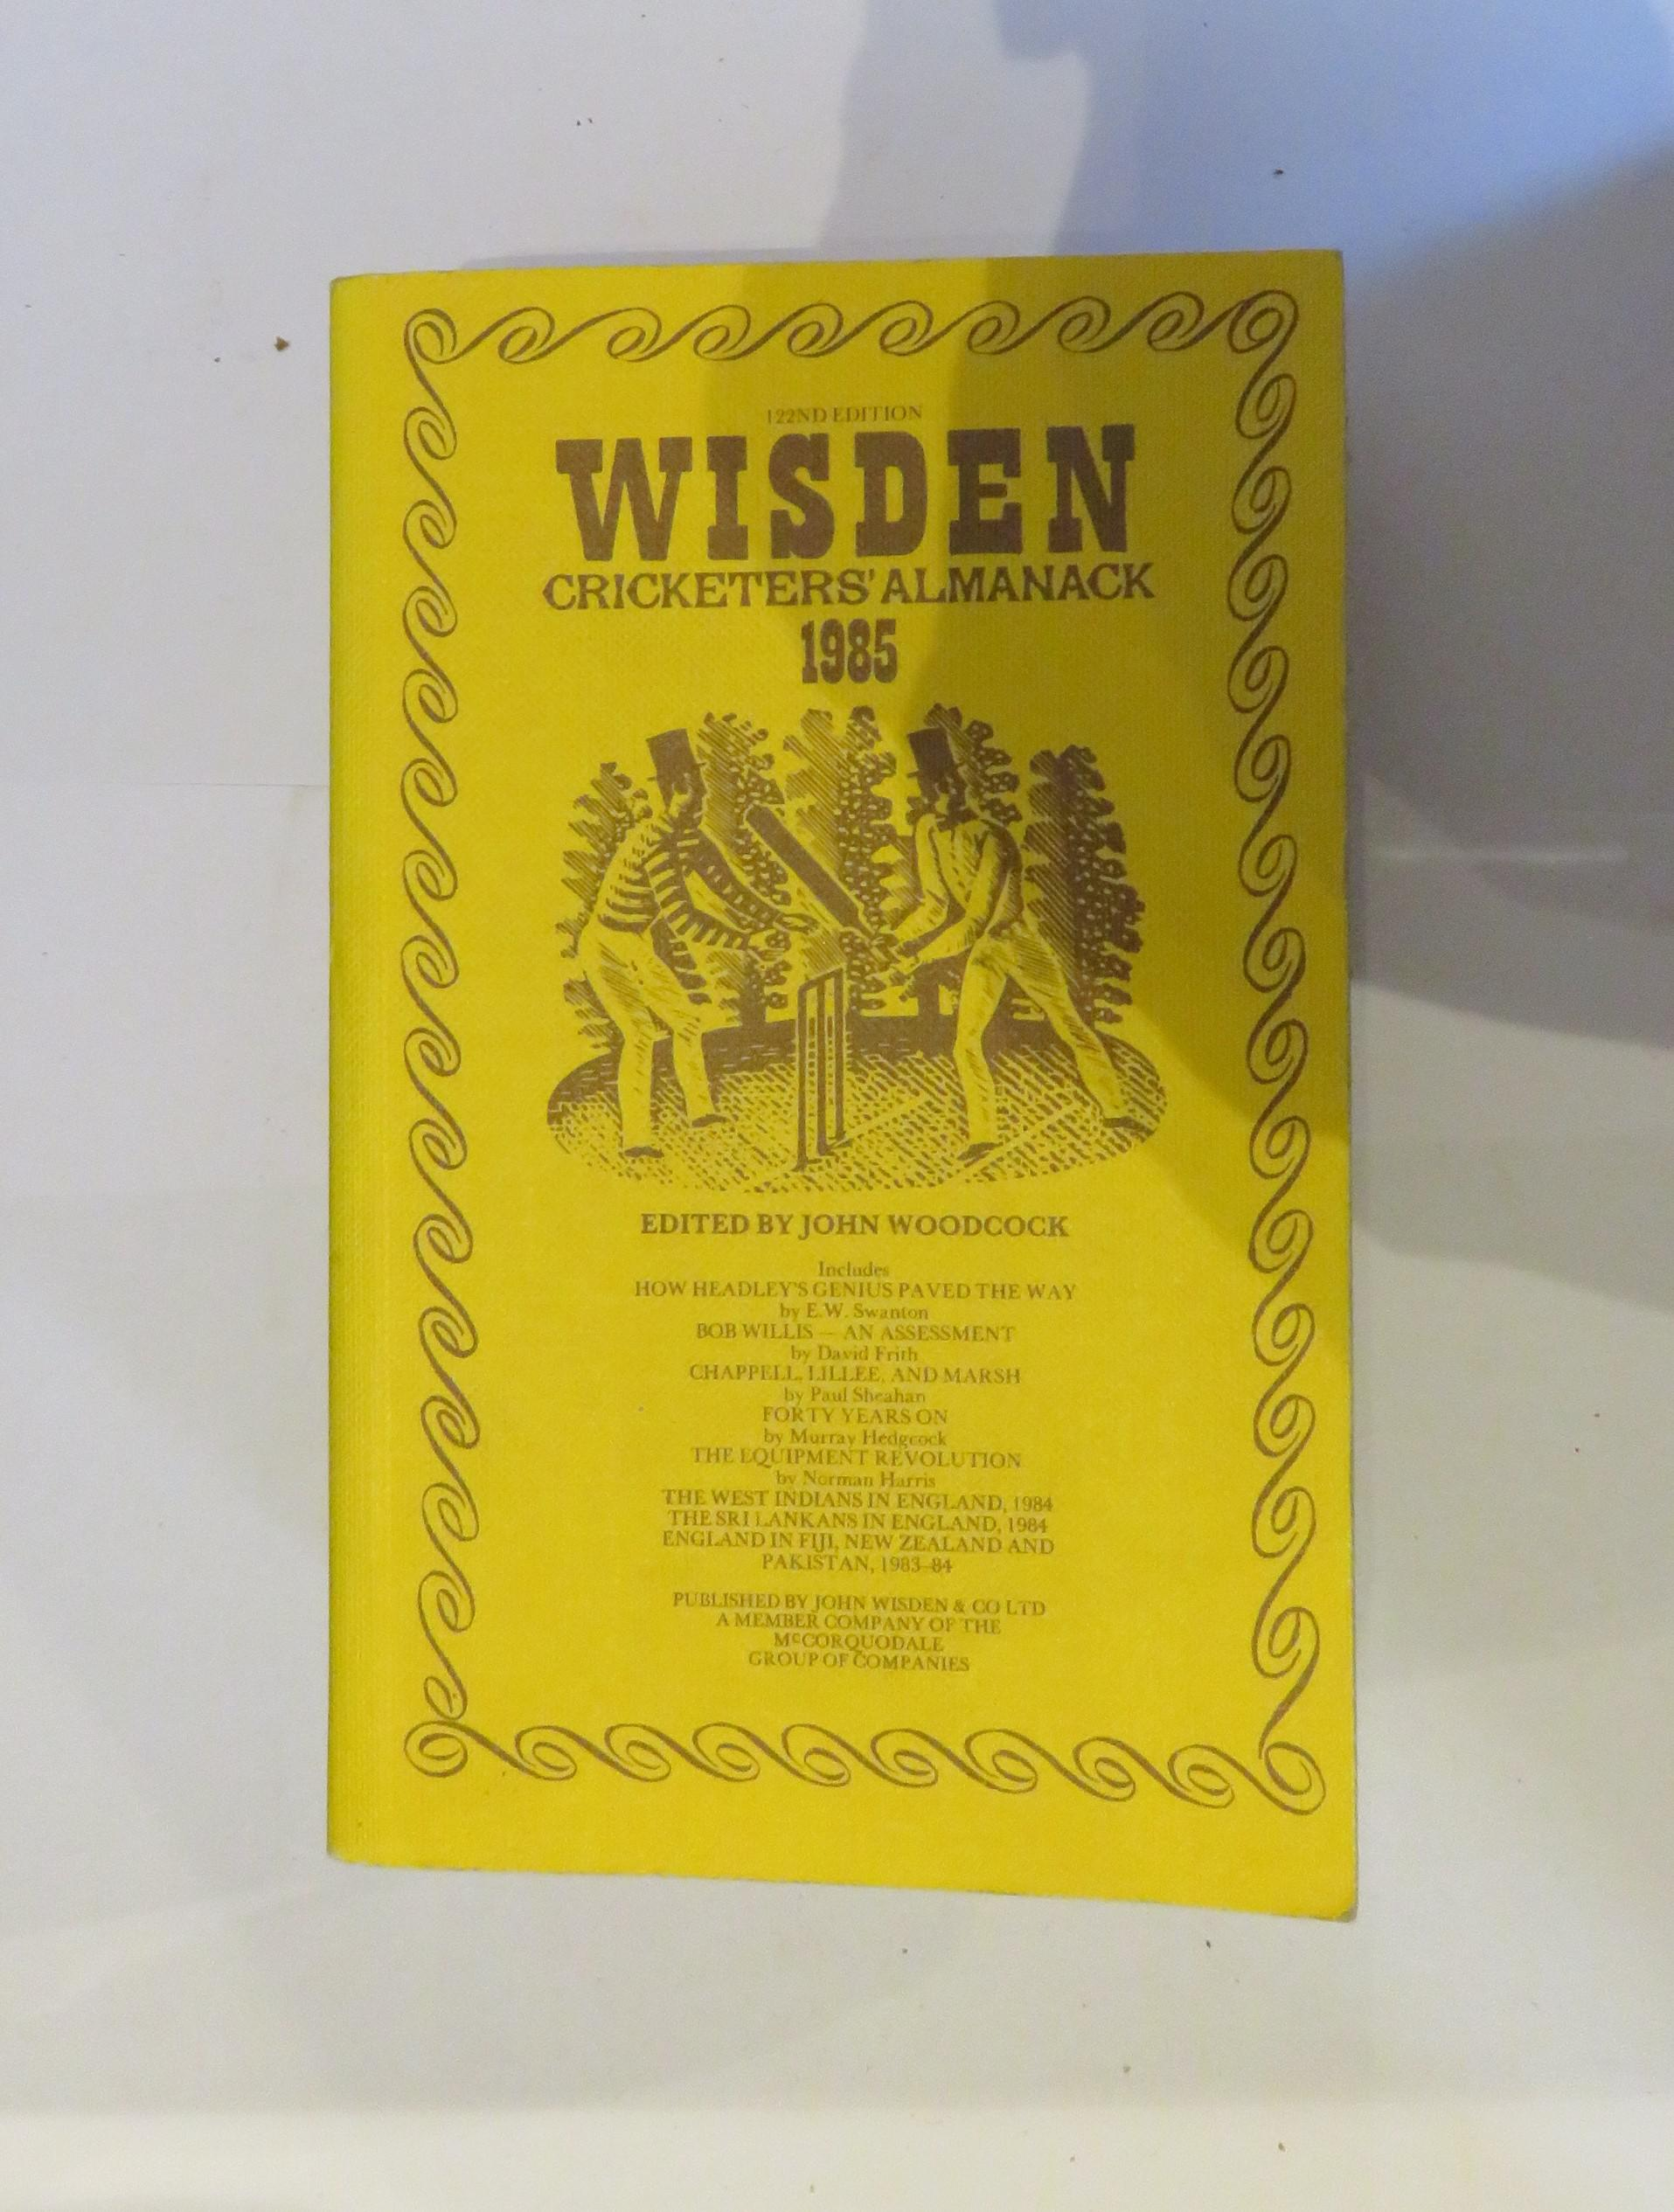 Wisden Cricketers' Alamnack 1985